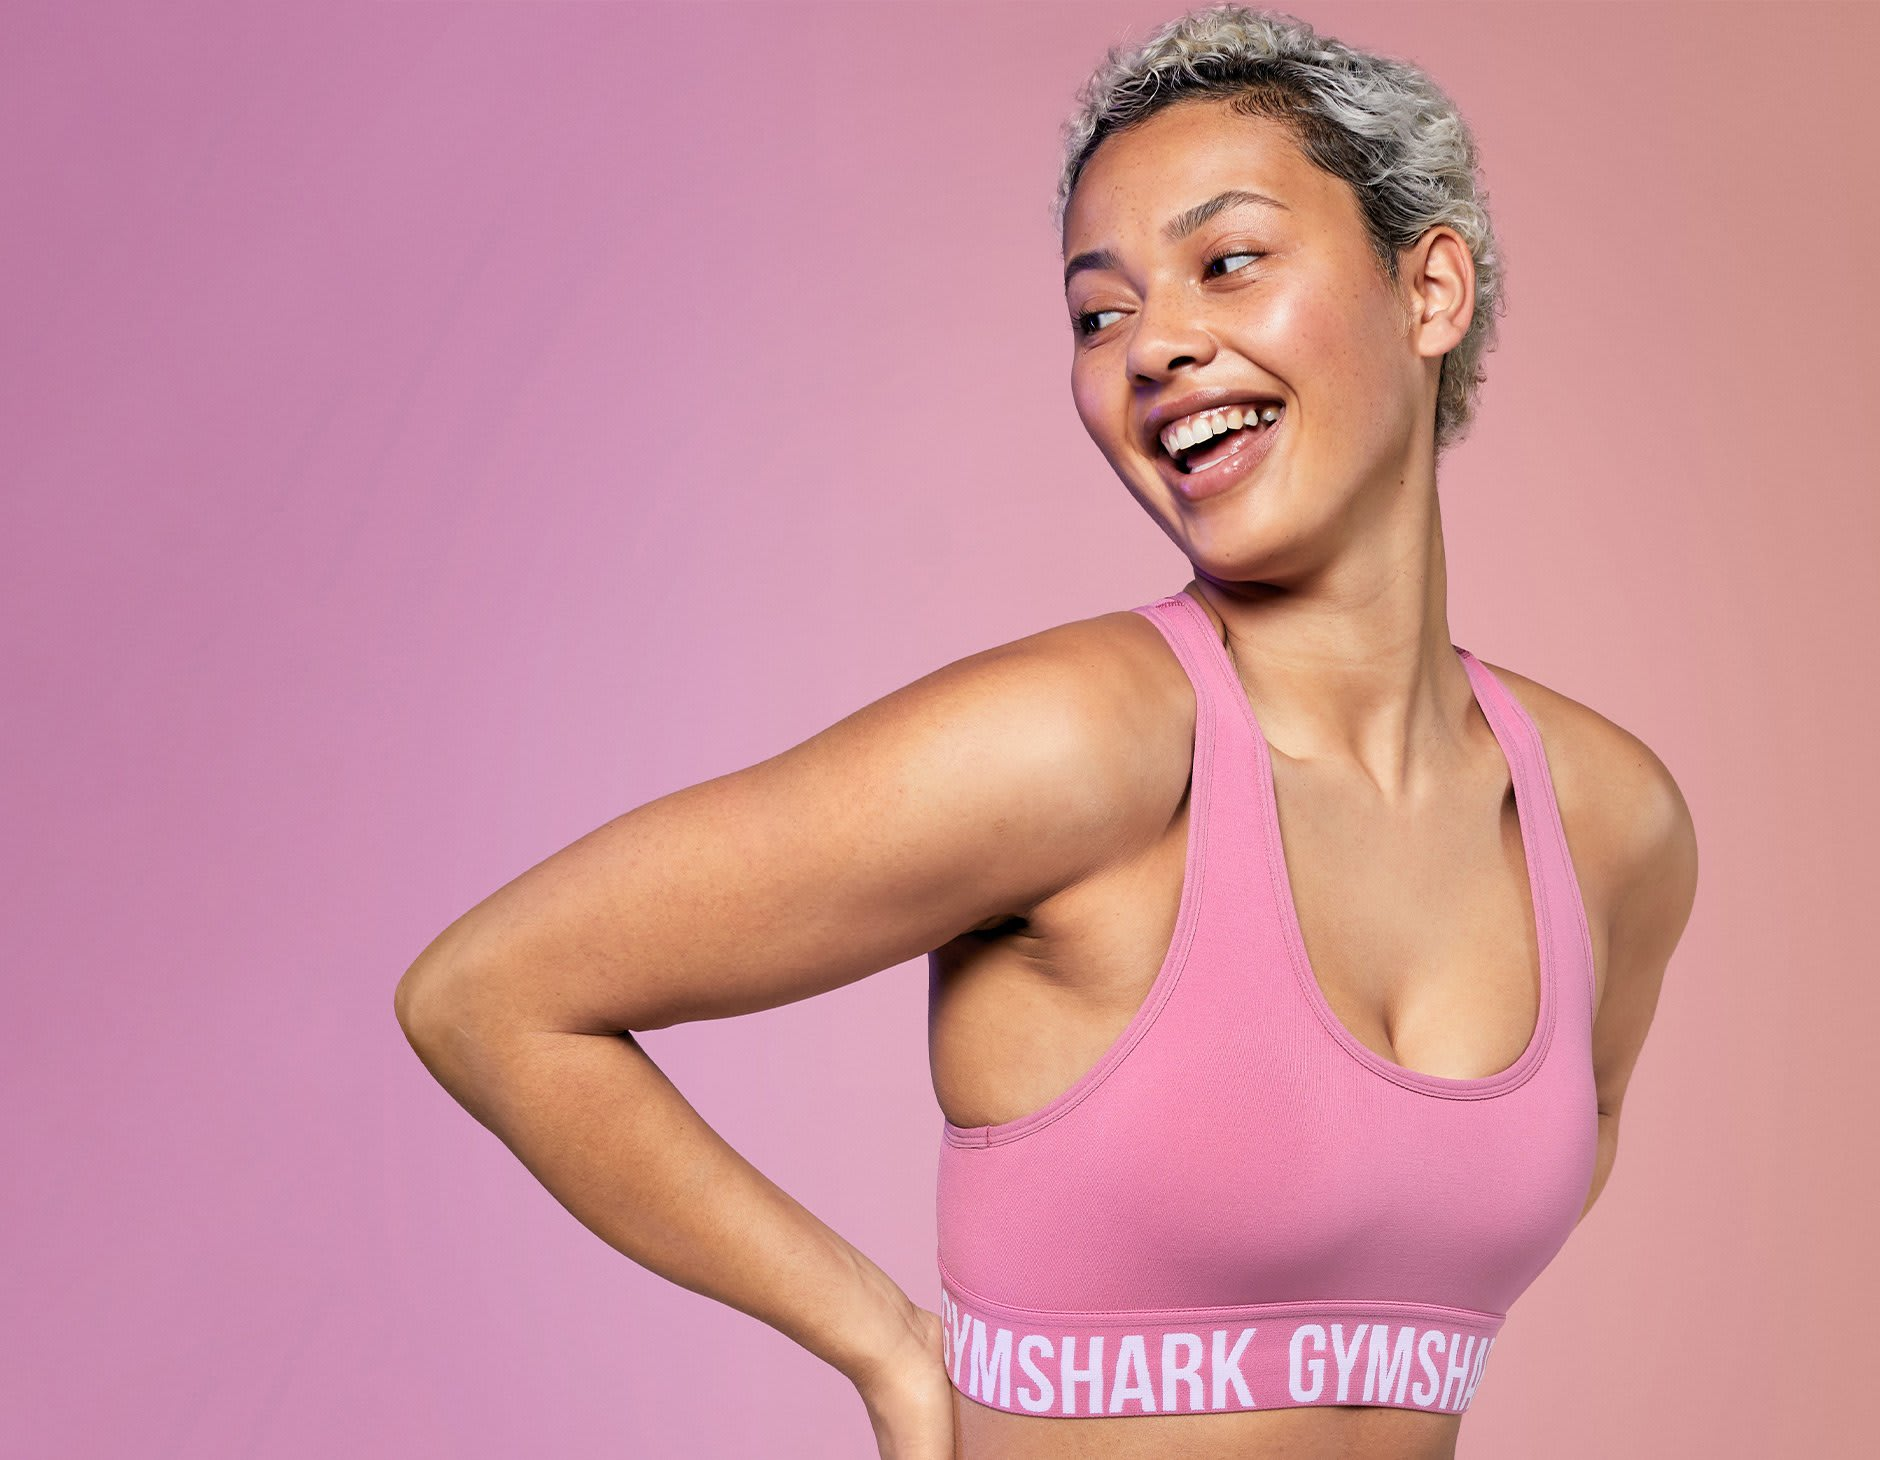 Female smiling while wearing the Fit Sports Bra in Pink infront of a pink background.